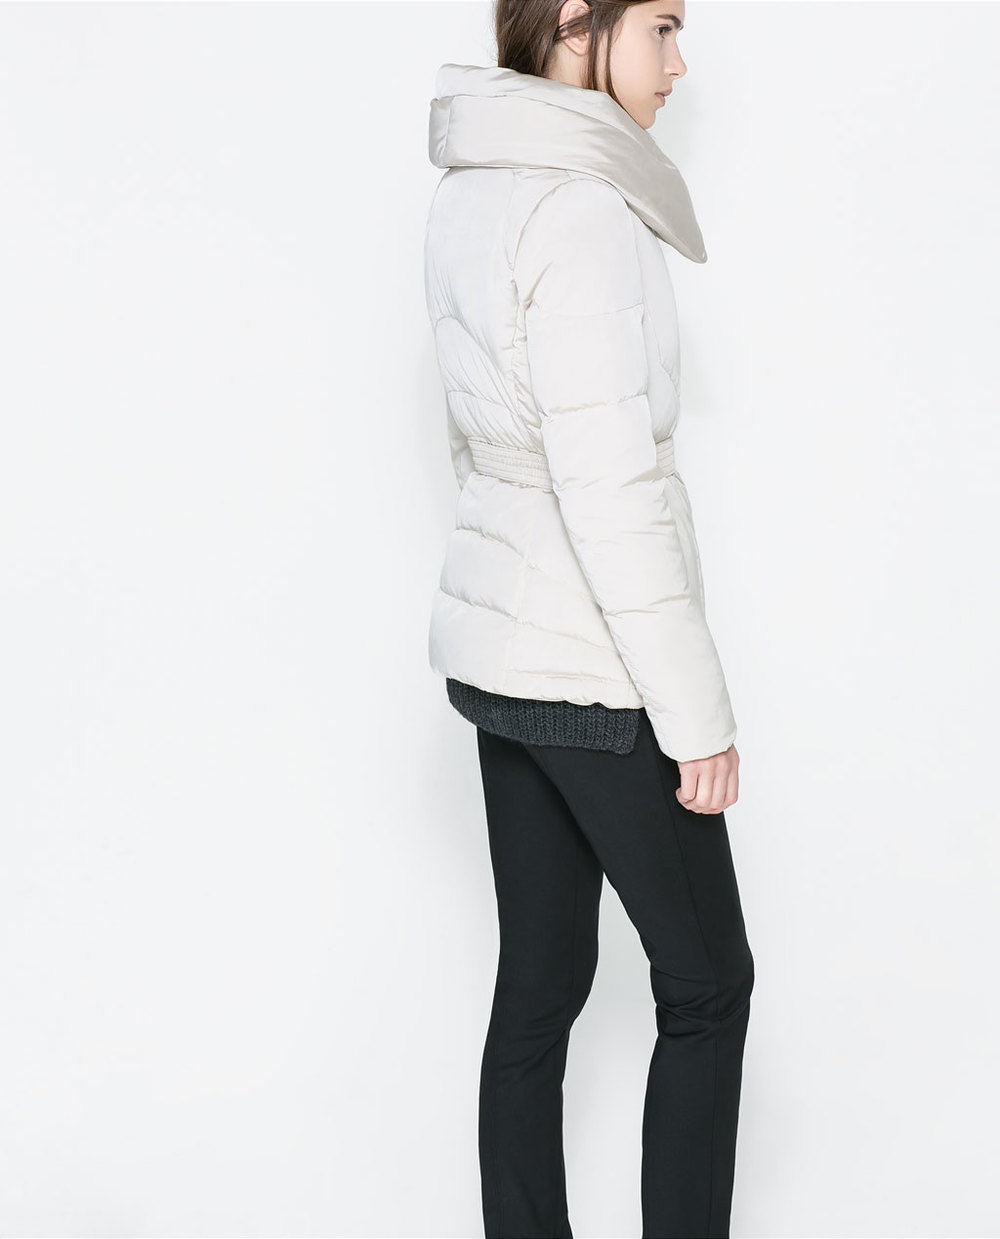 Quilted anorak with wraparound collar. Zara. Was: $179.90. Now: $99.99.